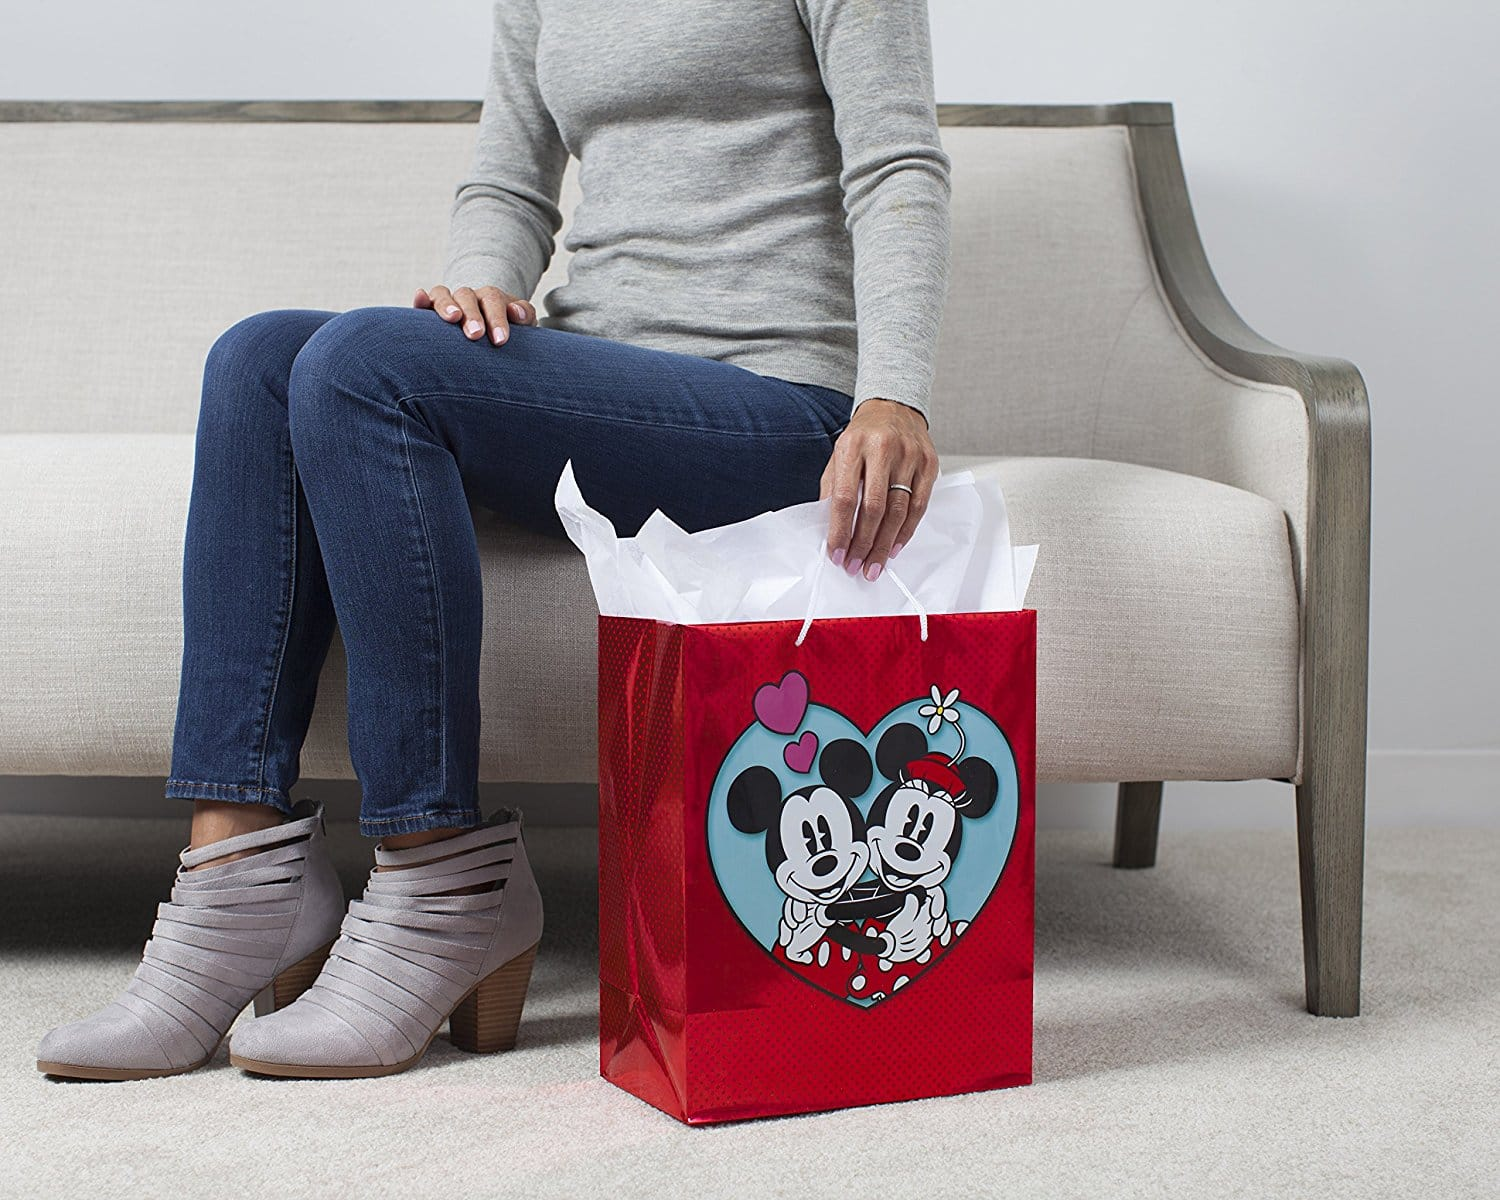 Hallmark Valentine's Day Large Gift Bag (Mickey & Minnie in Heart) for  $2.99  @amazon